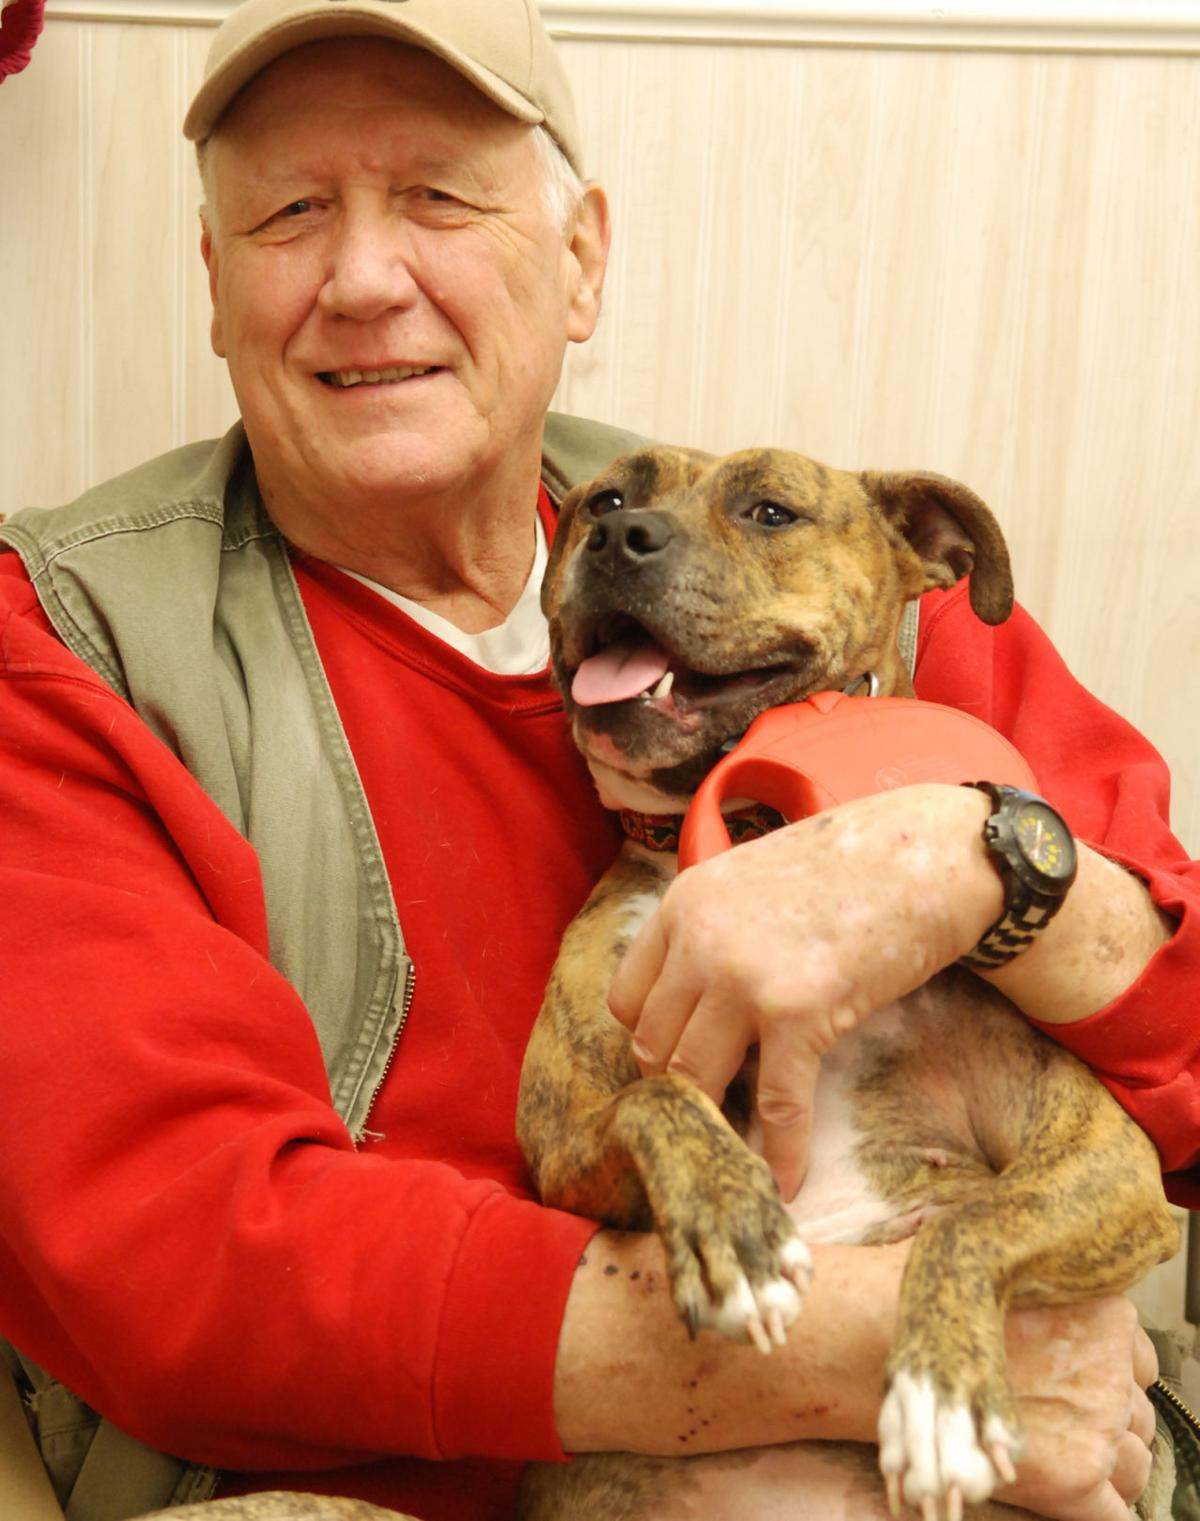 Humane society volunteer holding dog